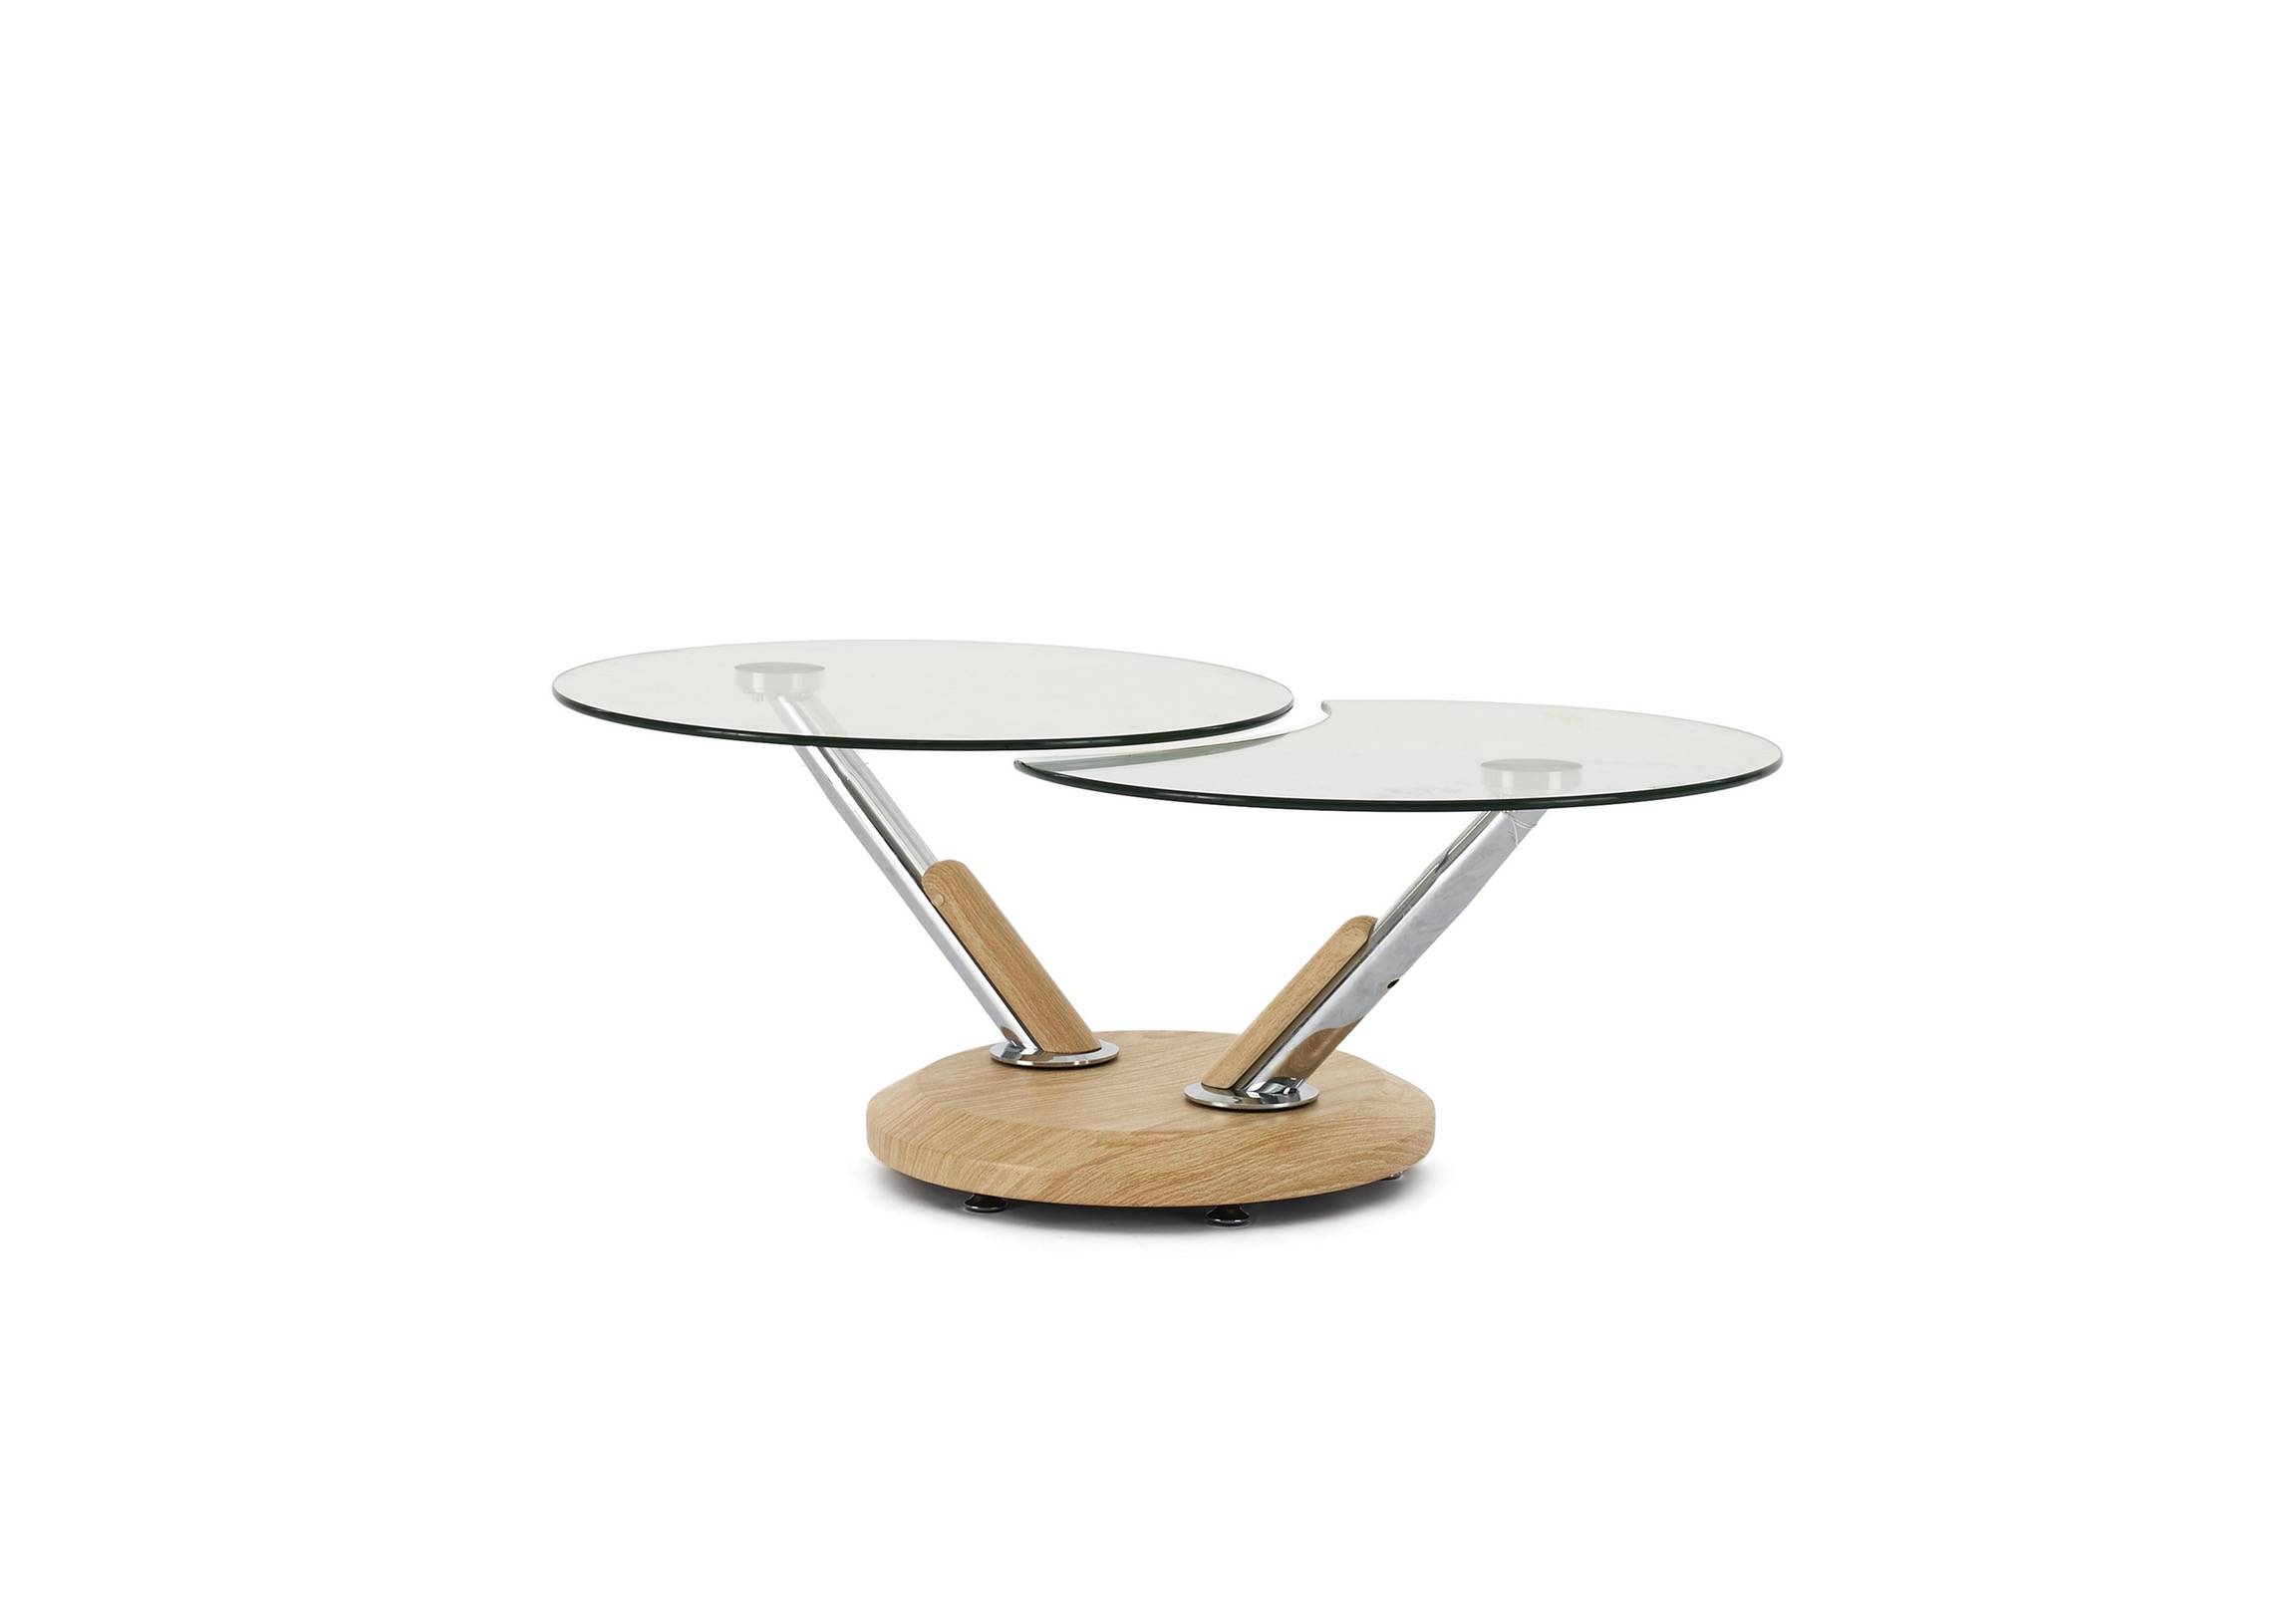 Tokyo Coffee Table Furniture Village Twist throughout Tokyo Coffee Tables (Image 17 of 30)